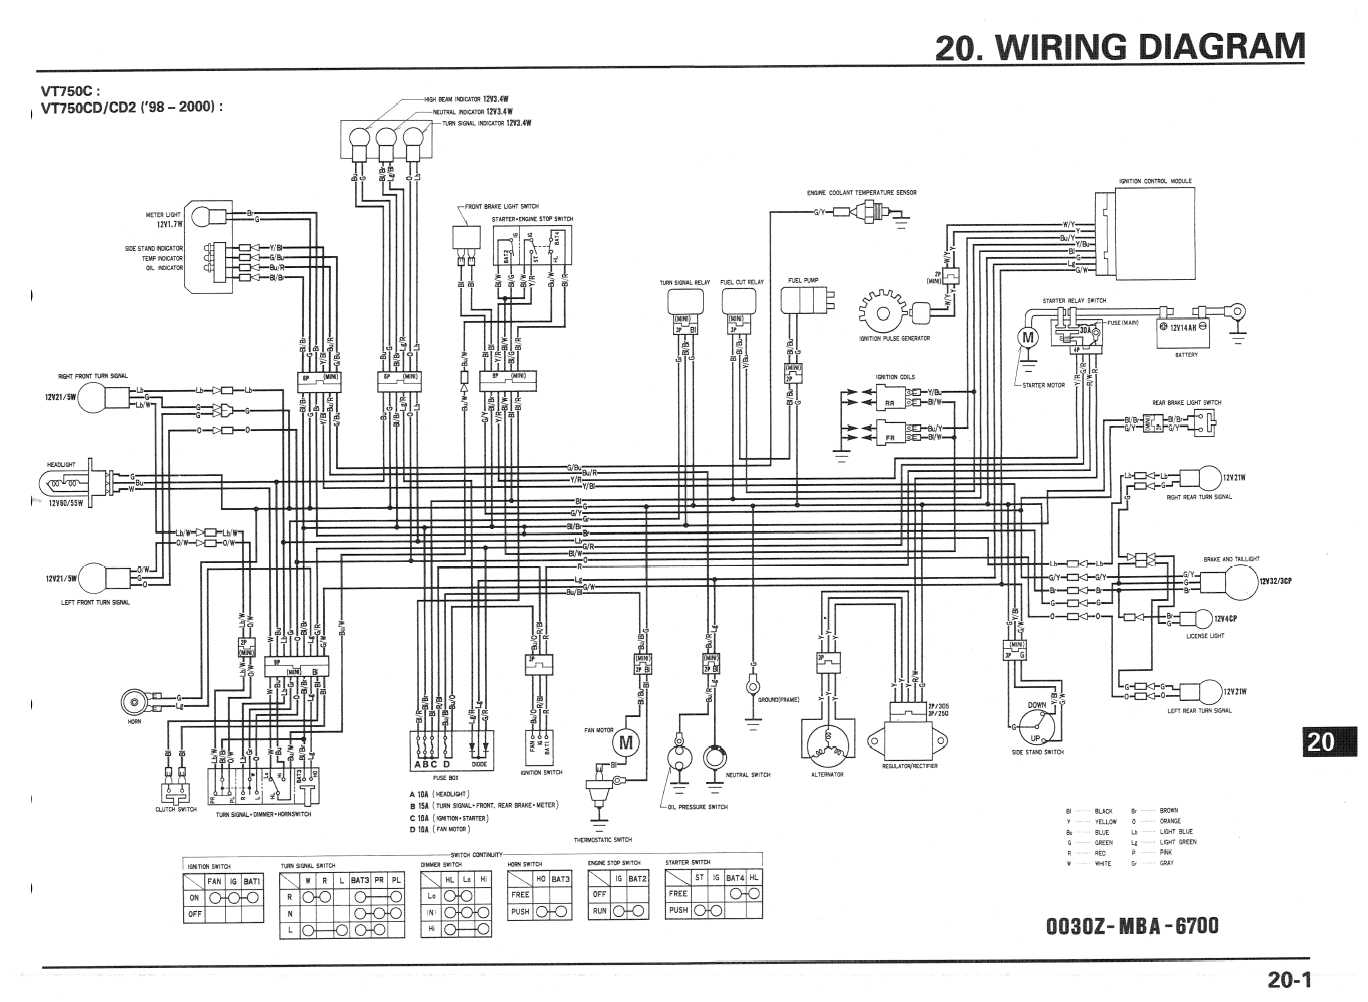 hight resolution of 2006 honda vt1100 wiring diagram html imageresizertool com honda cb 750 chopper motorcycle vt500 honda shadow